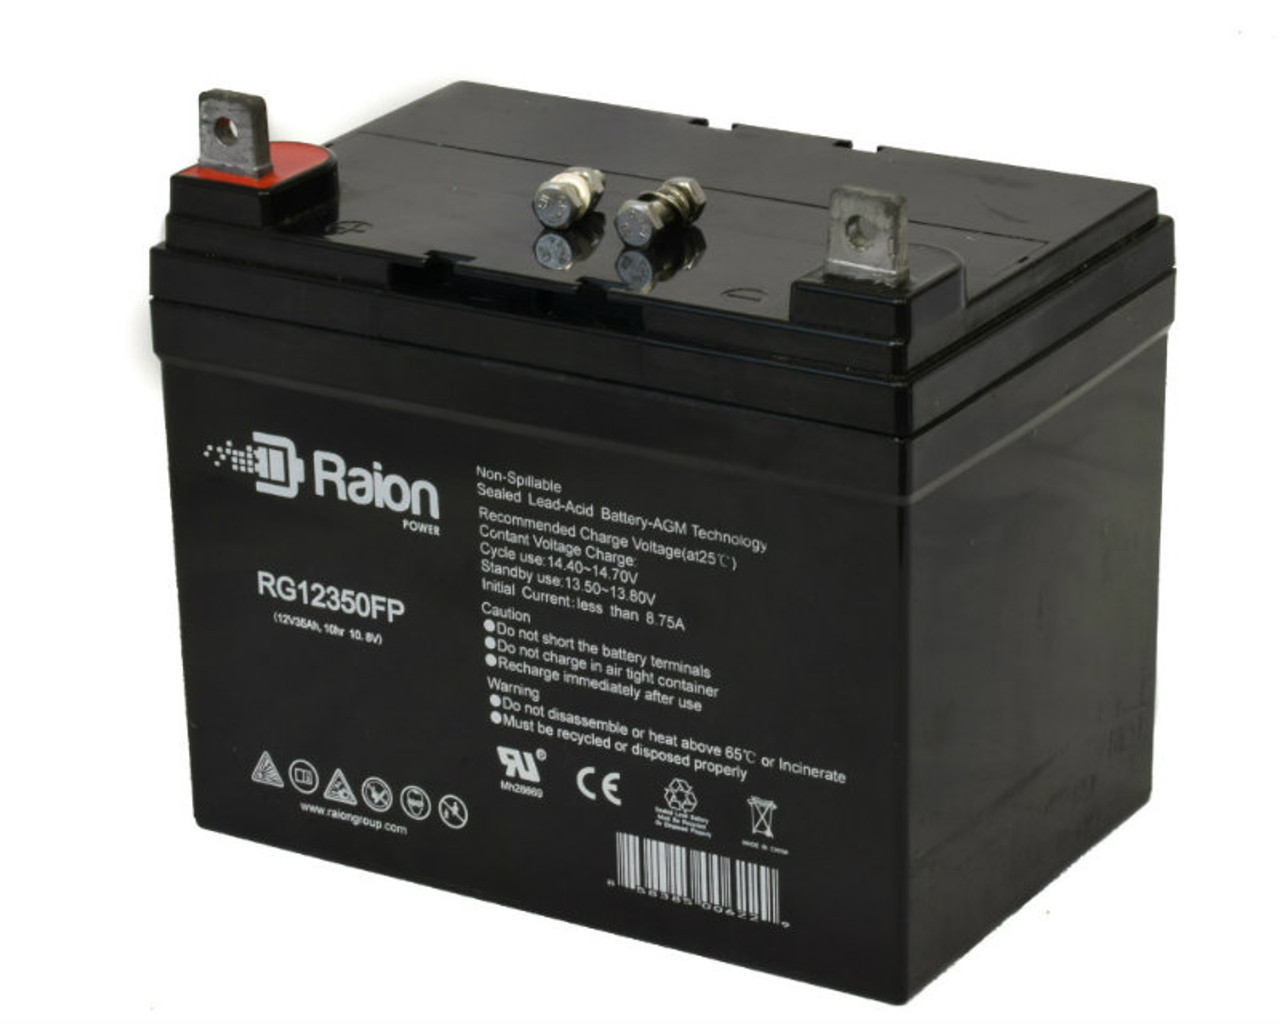 RG12350FP Sealed Lead Acid Battery Pack For Shoprider Sovereign 888-3 Mobility Scooter